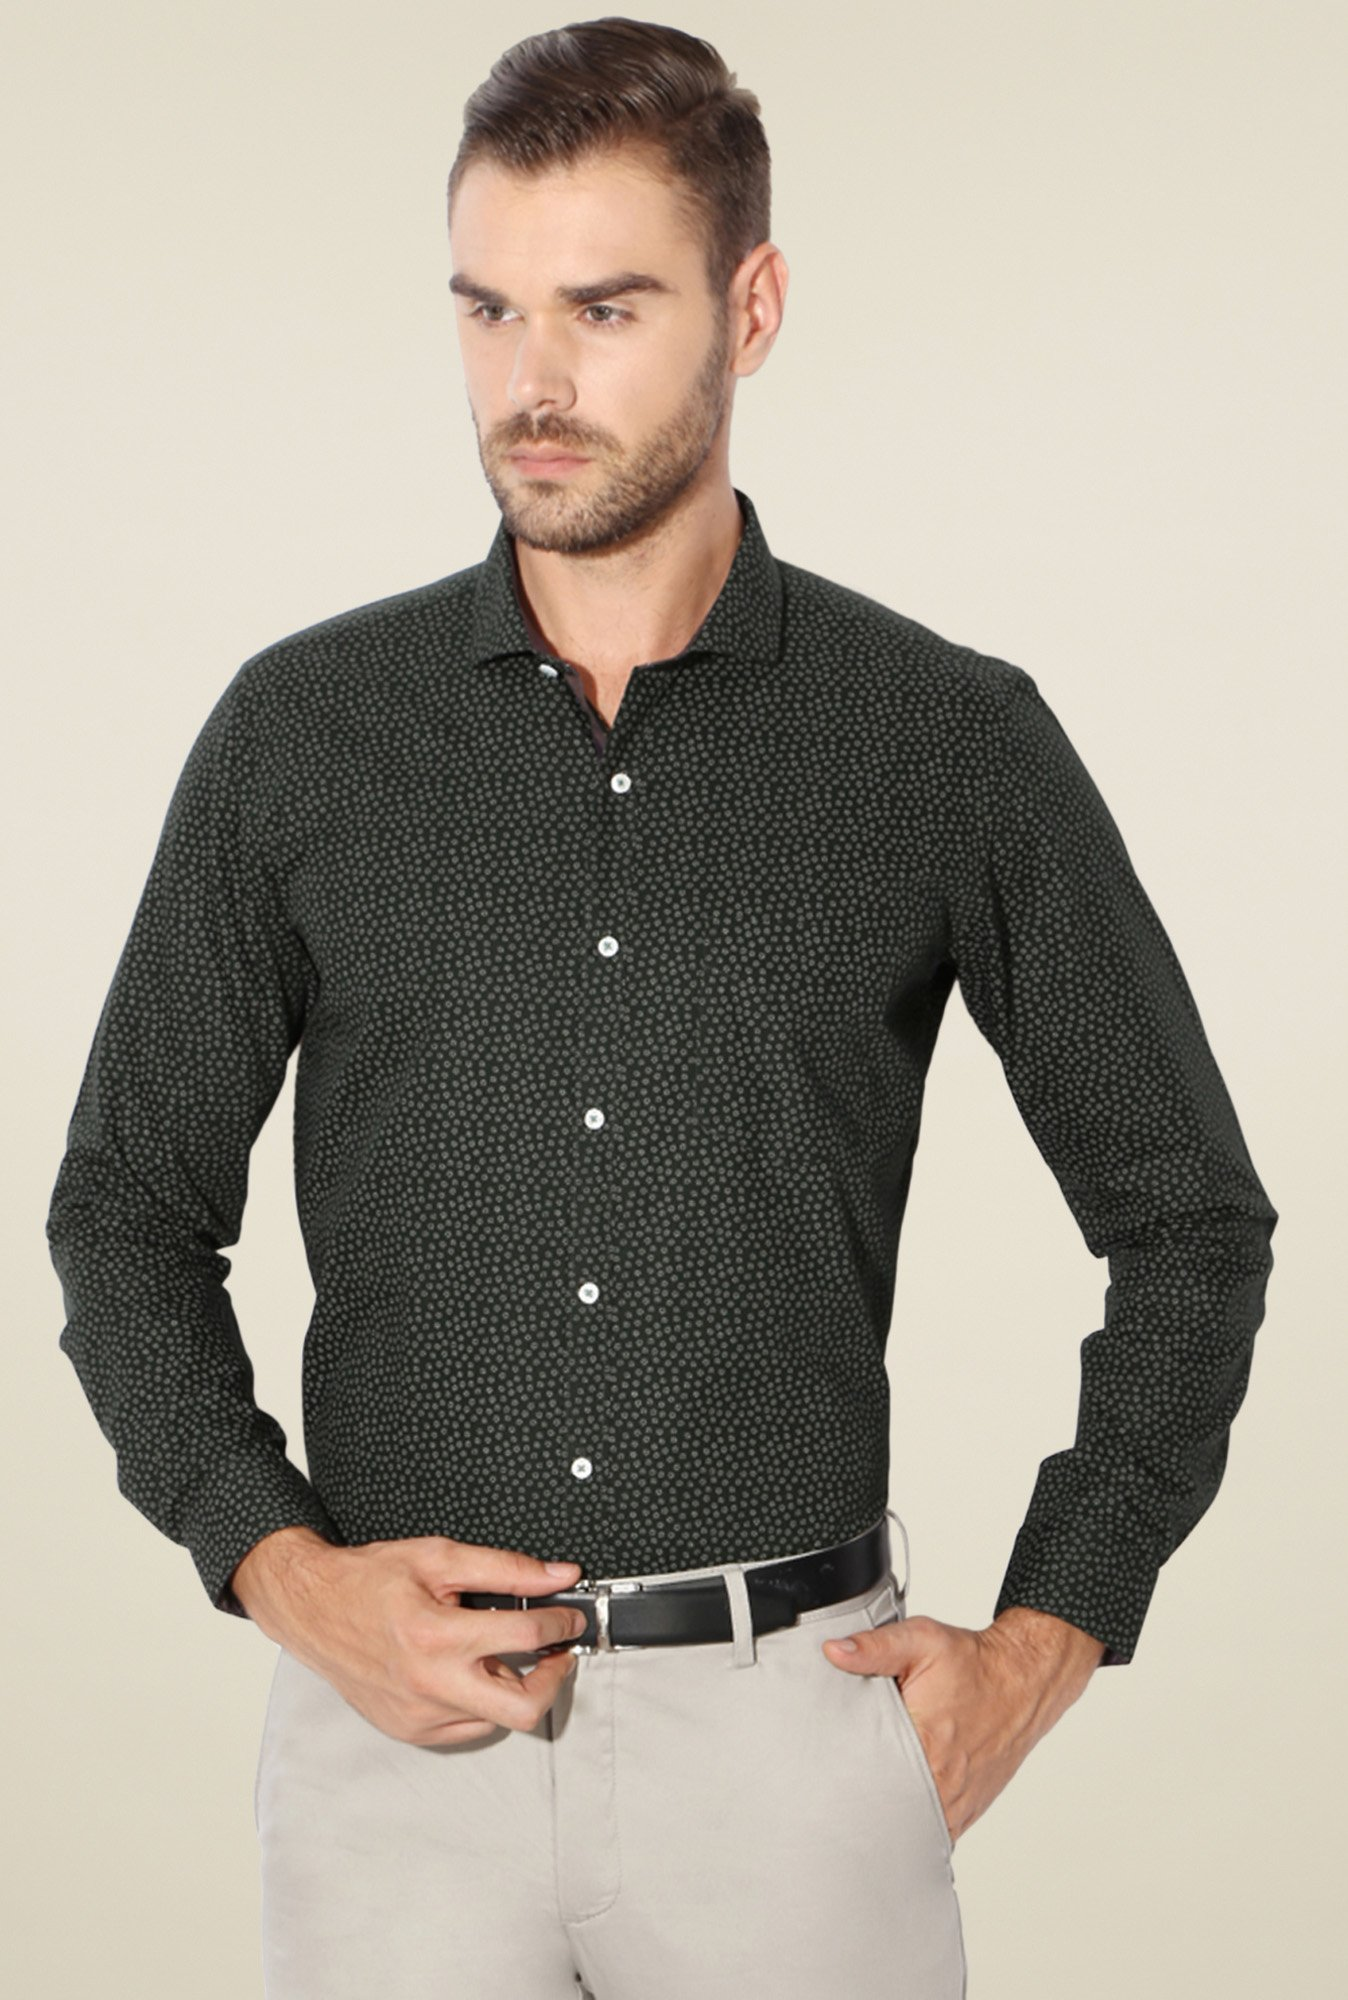 Van Heusen Olive Slim Fit Cotton Shirt